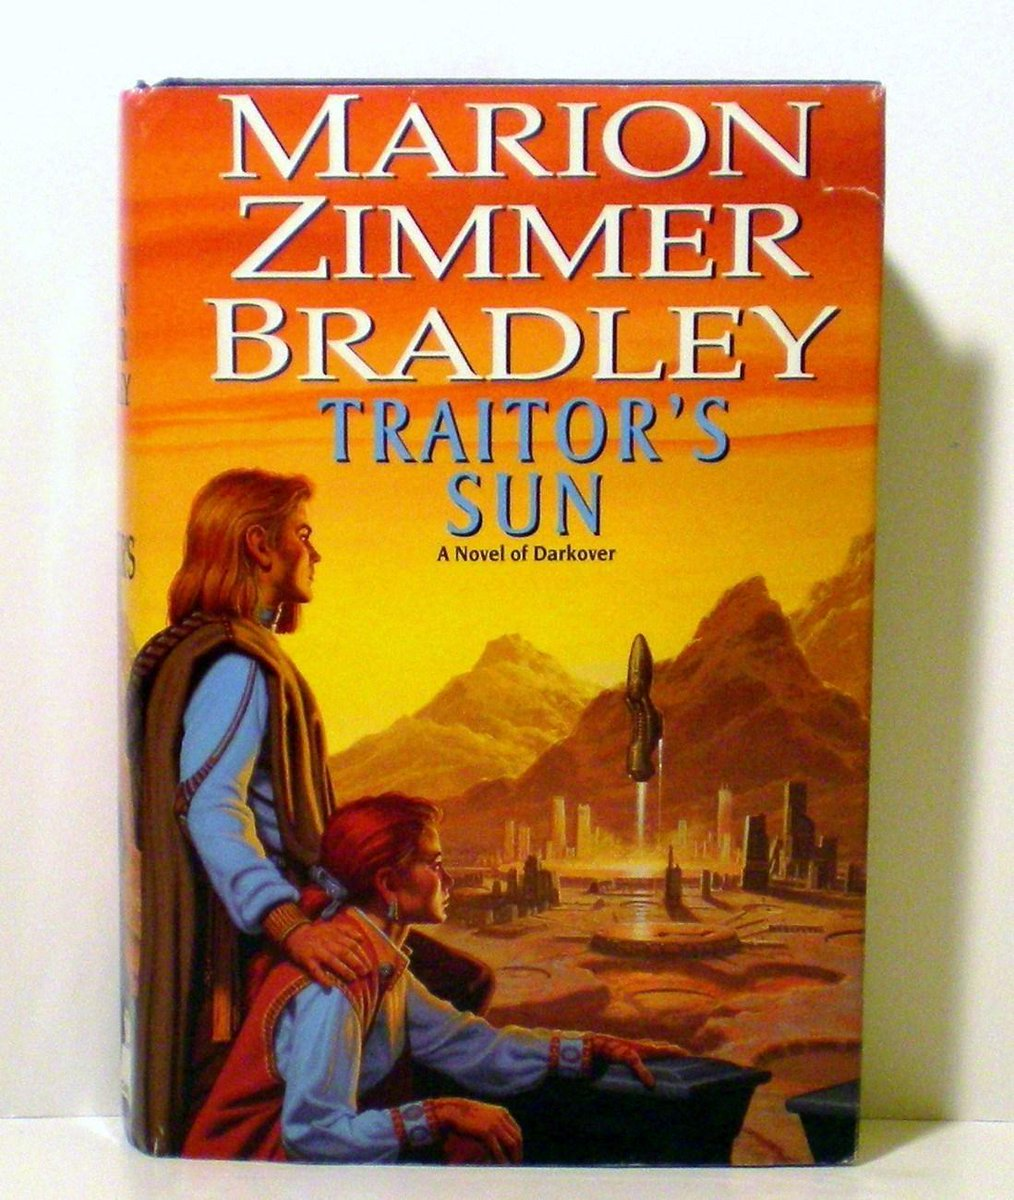 Traitor's Sun by Marion Zimmer #Bradley Collectors Ed #Darkover  http://www. cindybearsden.com/store.php?sell er=CindyBearsDen&pd=7552964  …  pic.twitter.com/fRI7Loj2i9 #book #SciFi #fantasy